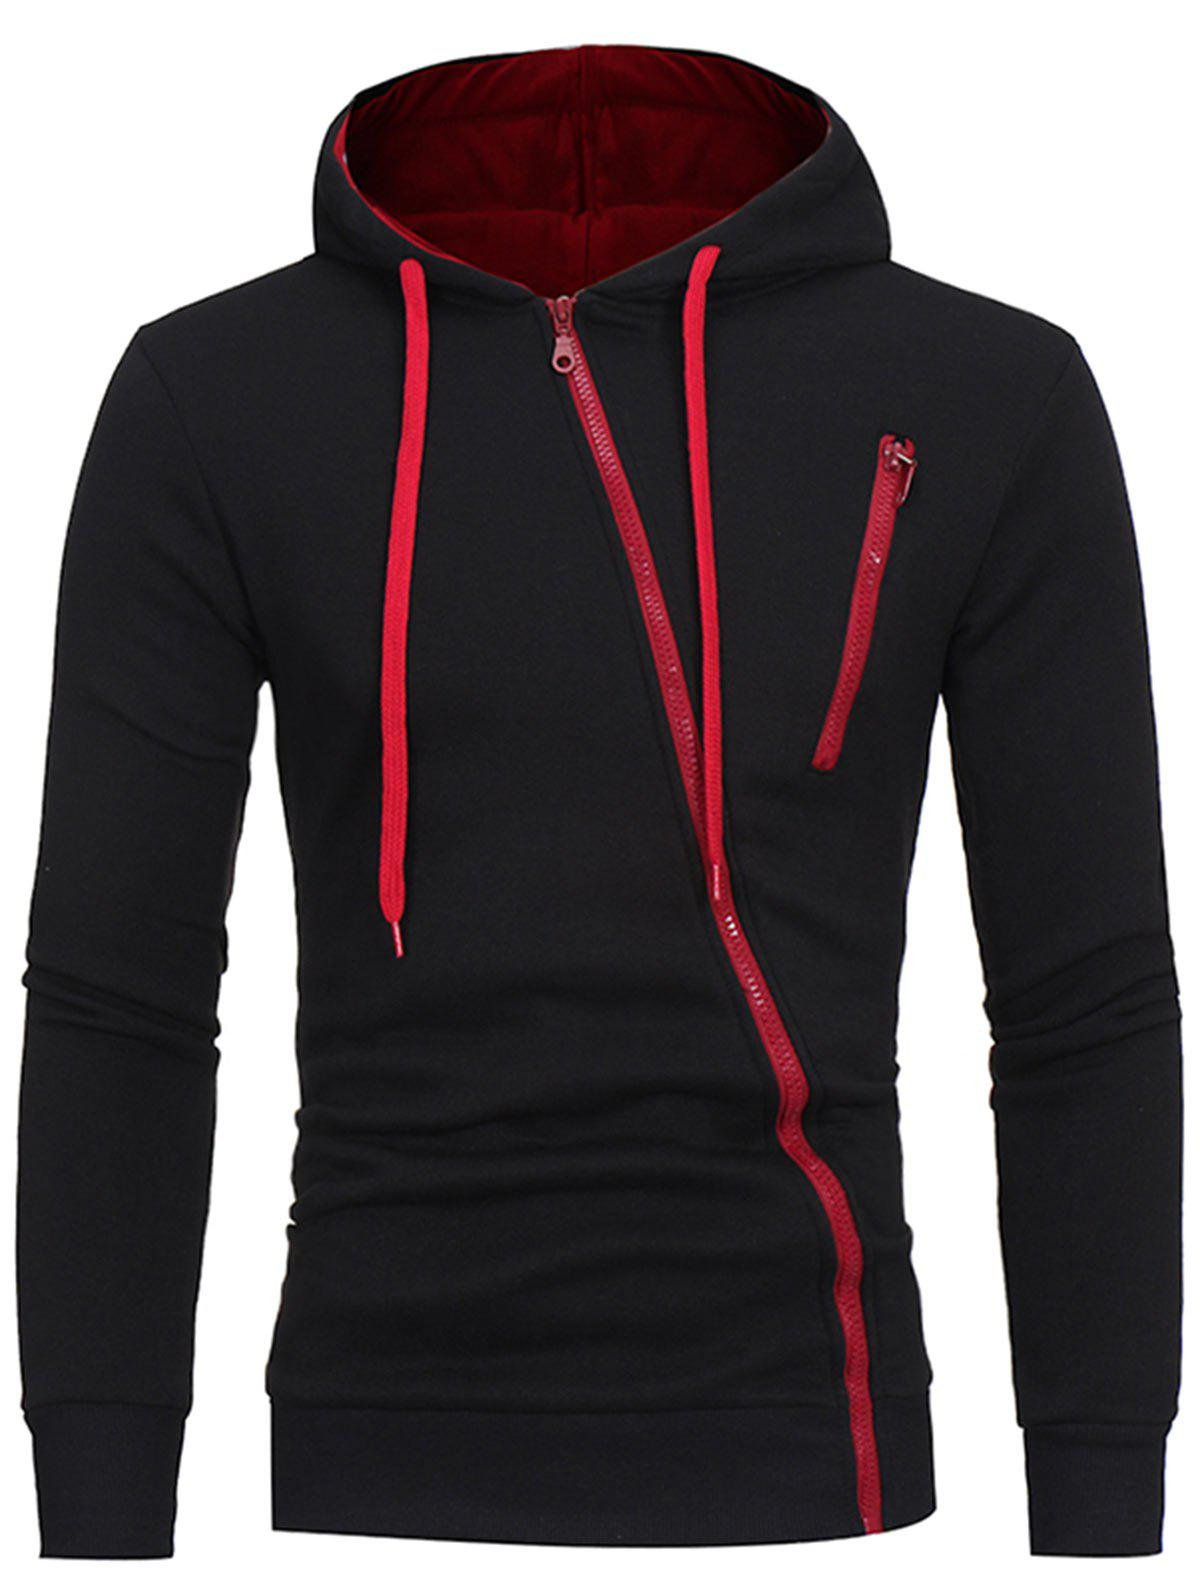 Color Block Oblique Zippers Fleece HoodieMEN<br><br>Size: M; Color: BLACK; Material: Polyester; Shirt Length: Regular; Sleeve Length: Full; Style: Fashion; Weight: 0.4500kg; Package Contents: 1 x Hoodie;